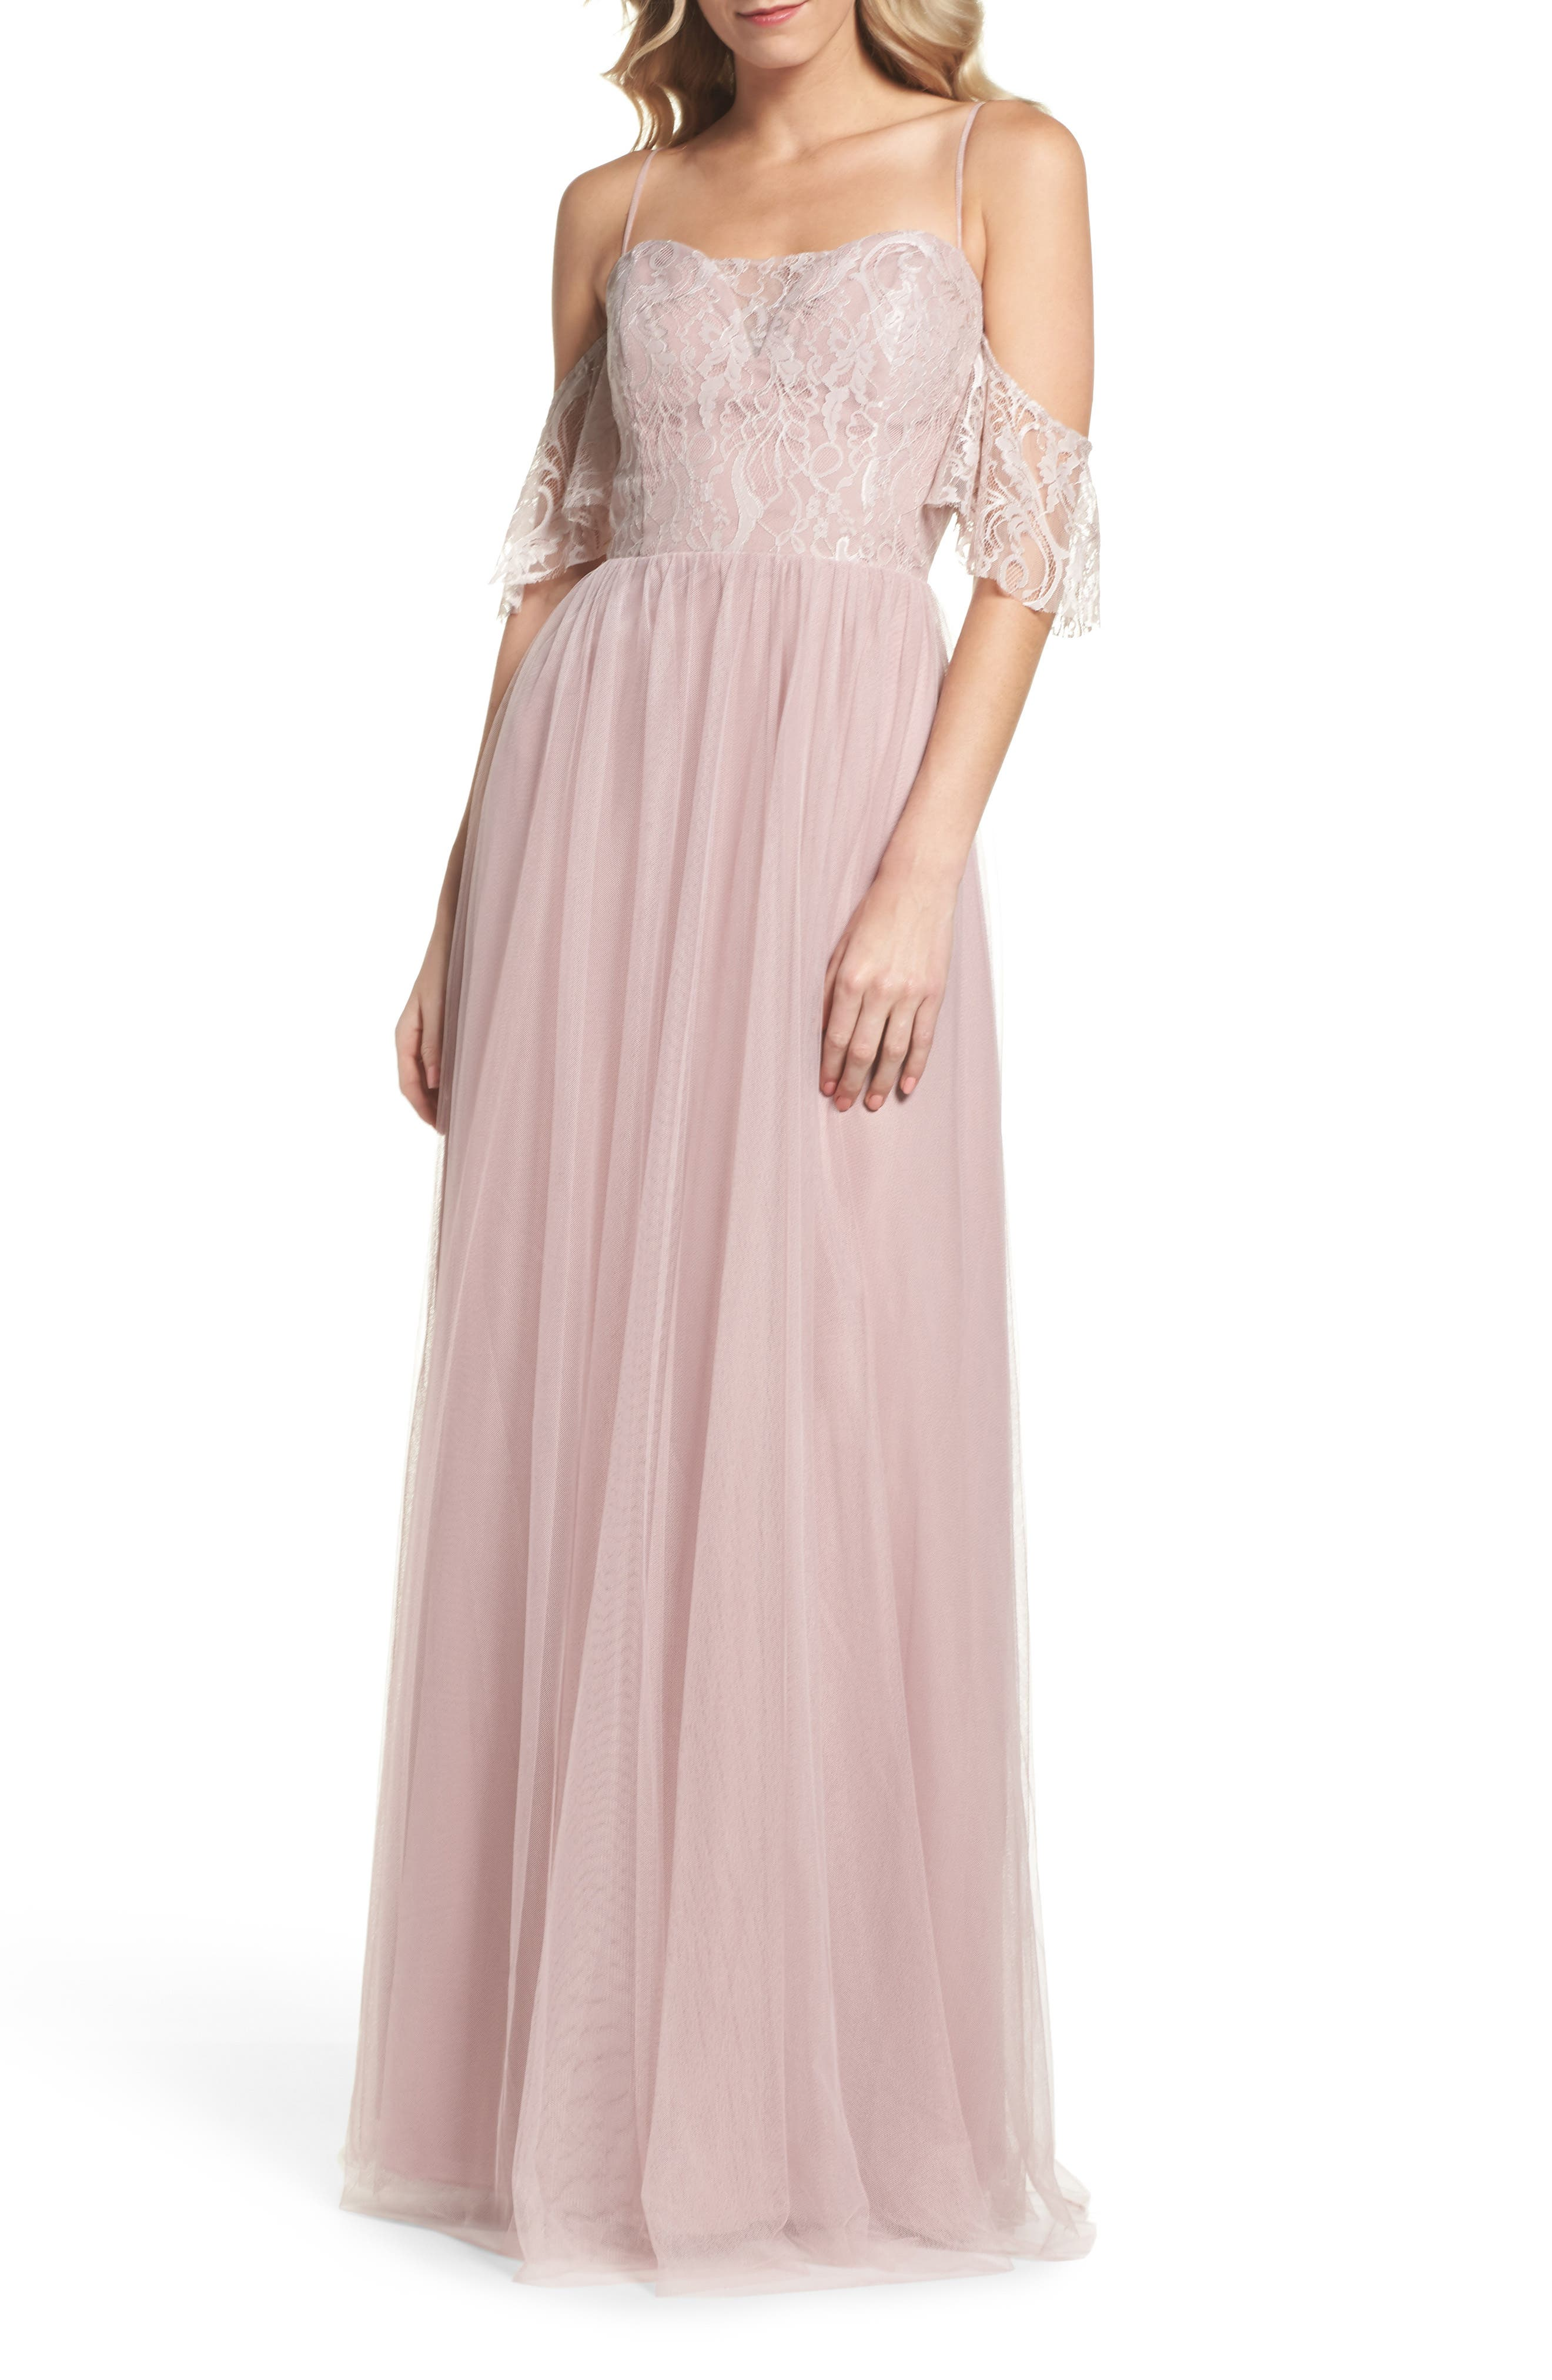 Main Image - Hayley Paige Occasions Cold Shoulder Lace Gown